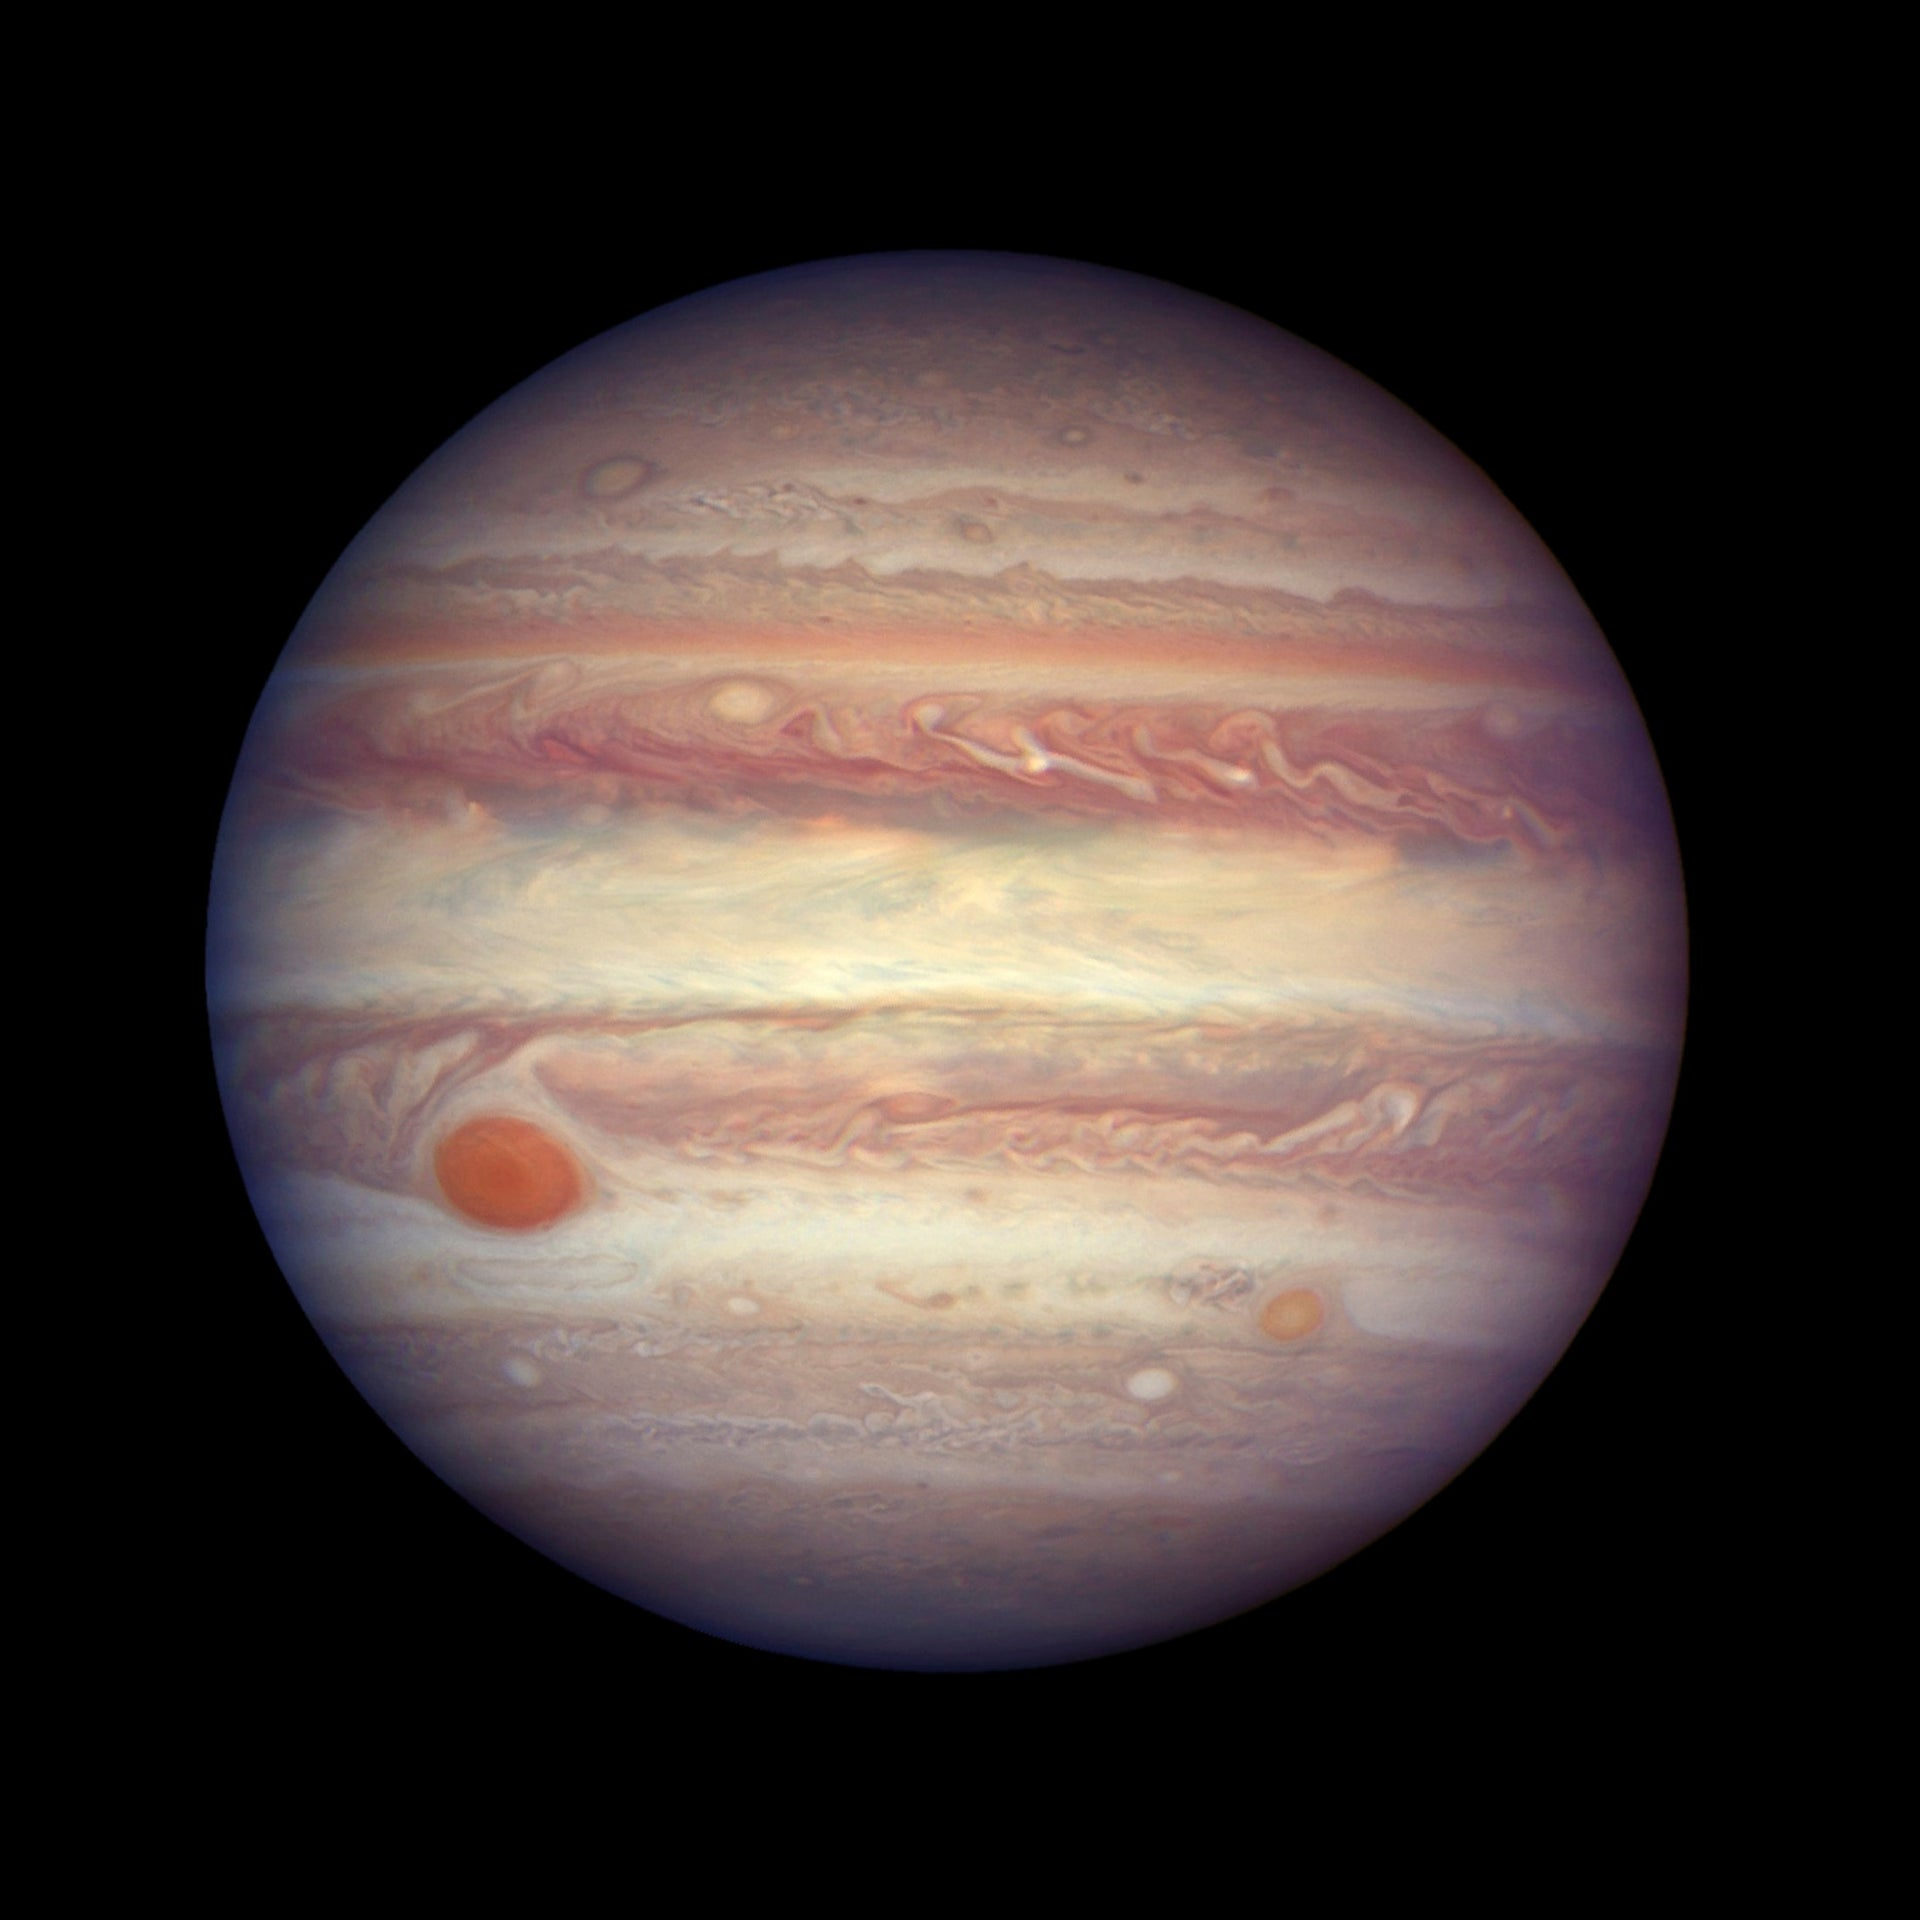 An image of planet Jupiter made available by NASA, April 3, 2017